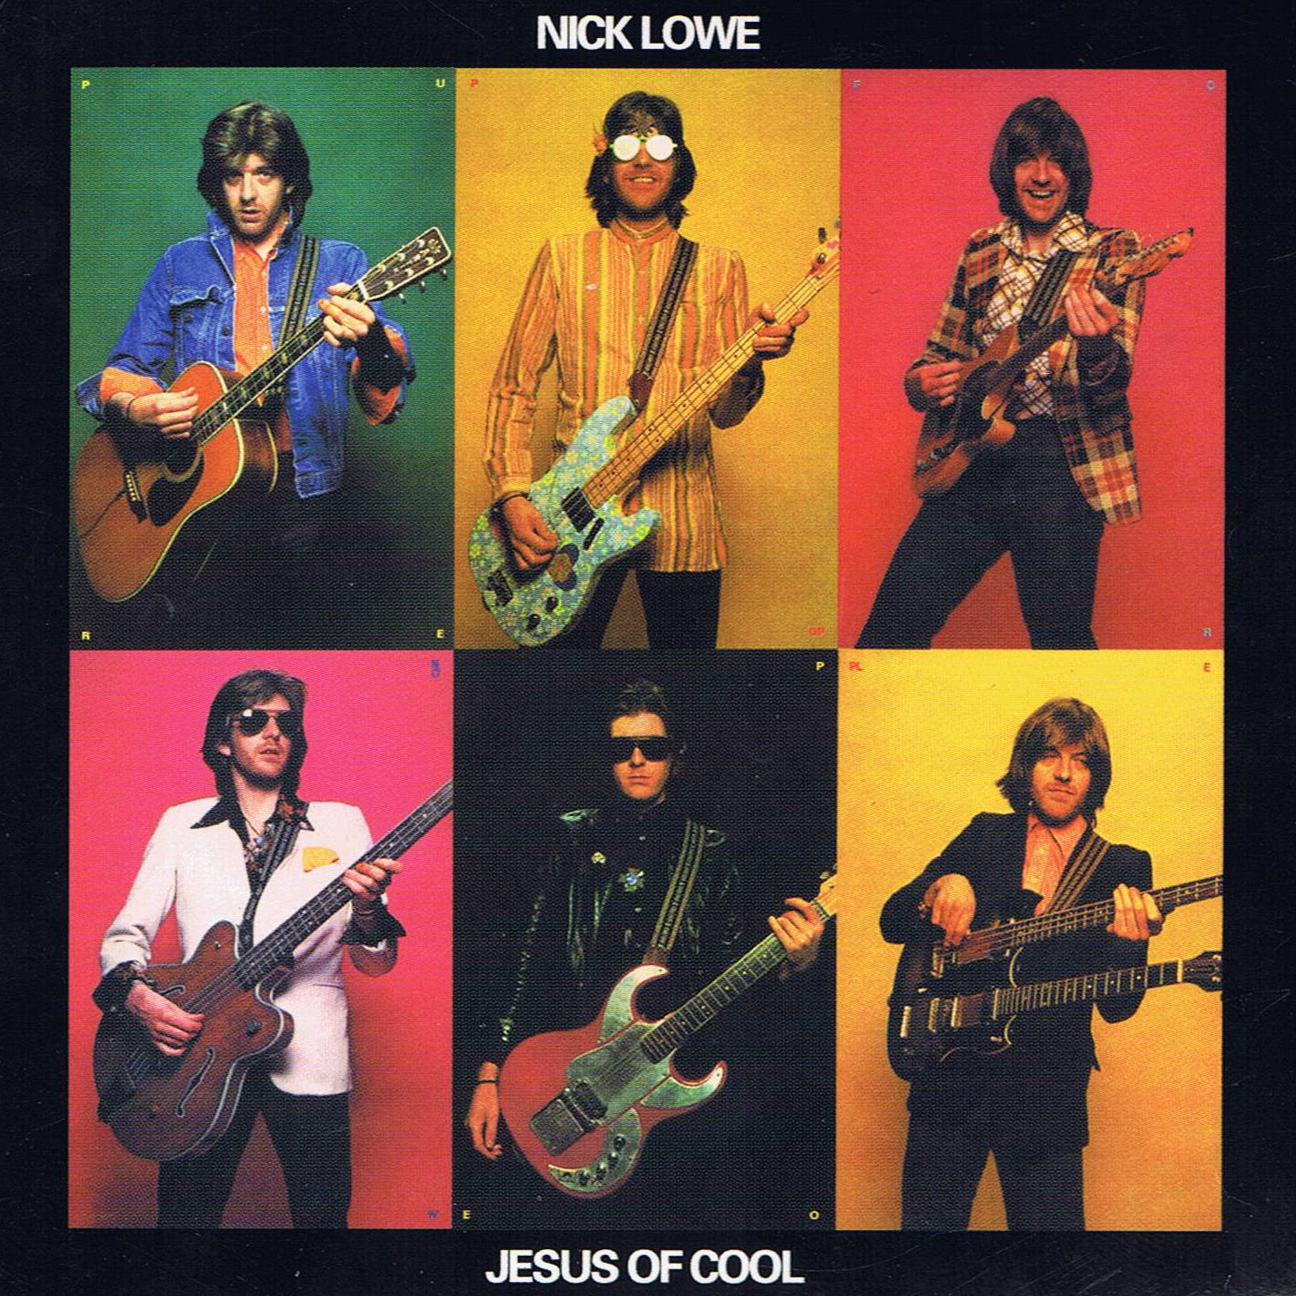 Lowe's Jesus of Cool debut solo album arrived in 1978